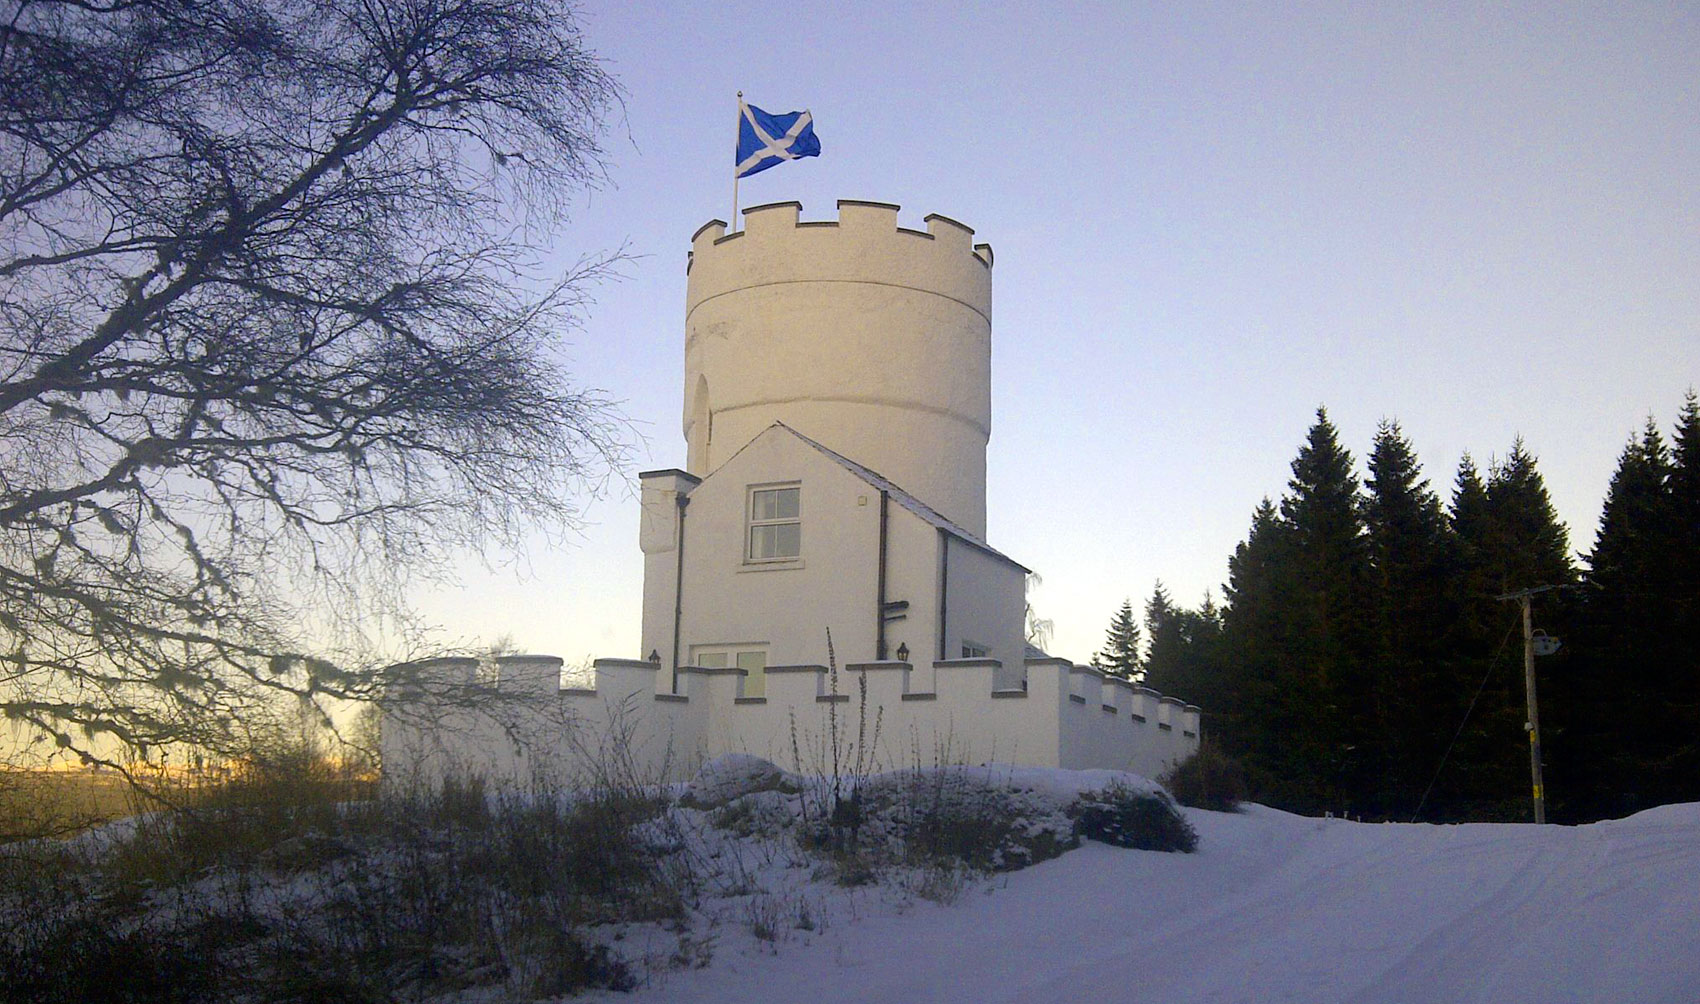 The White Tower in the snow with Scottish flag